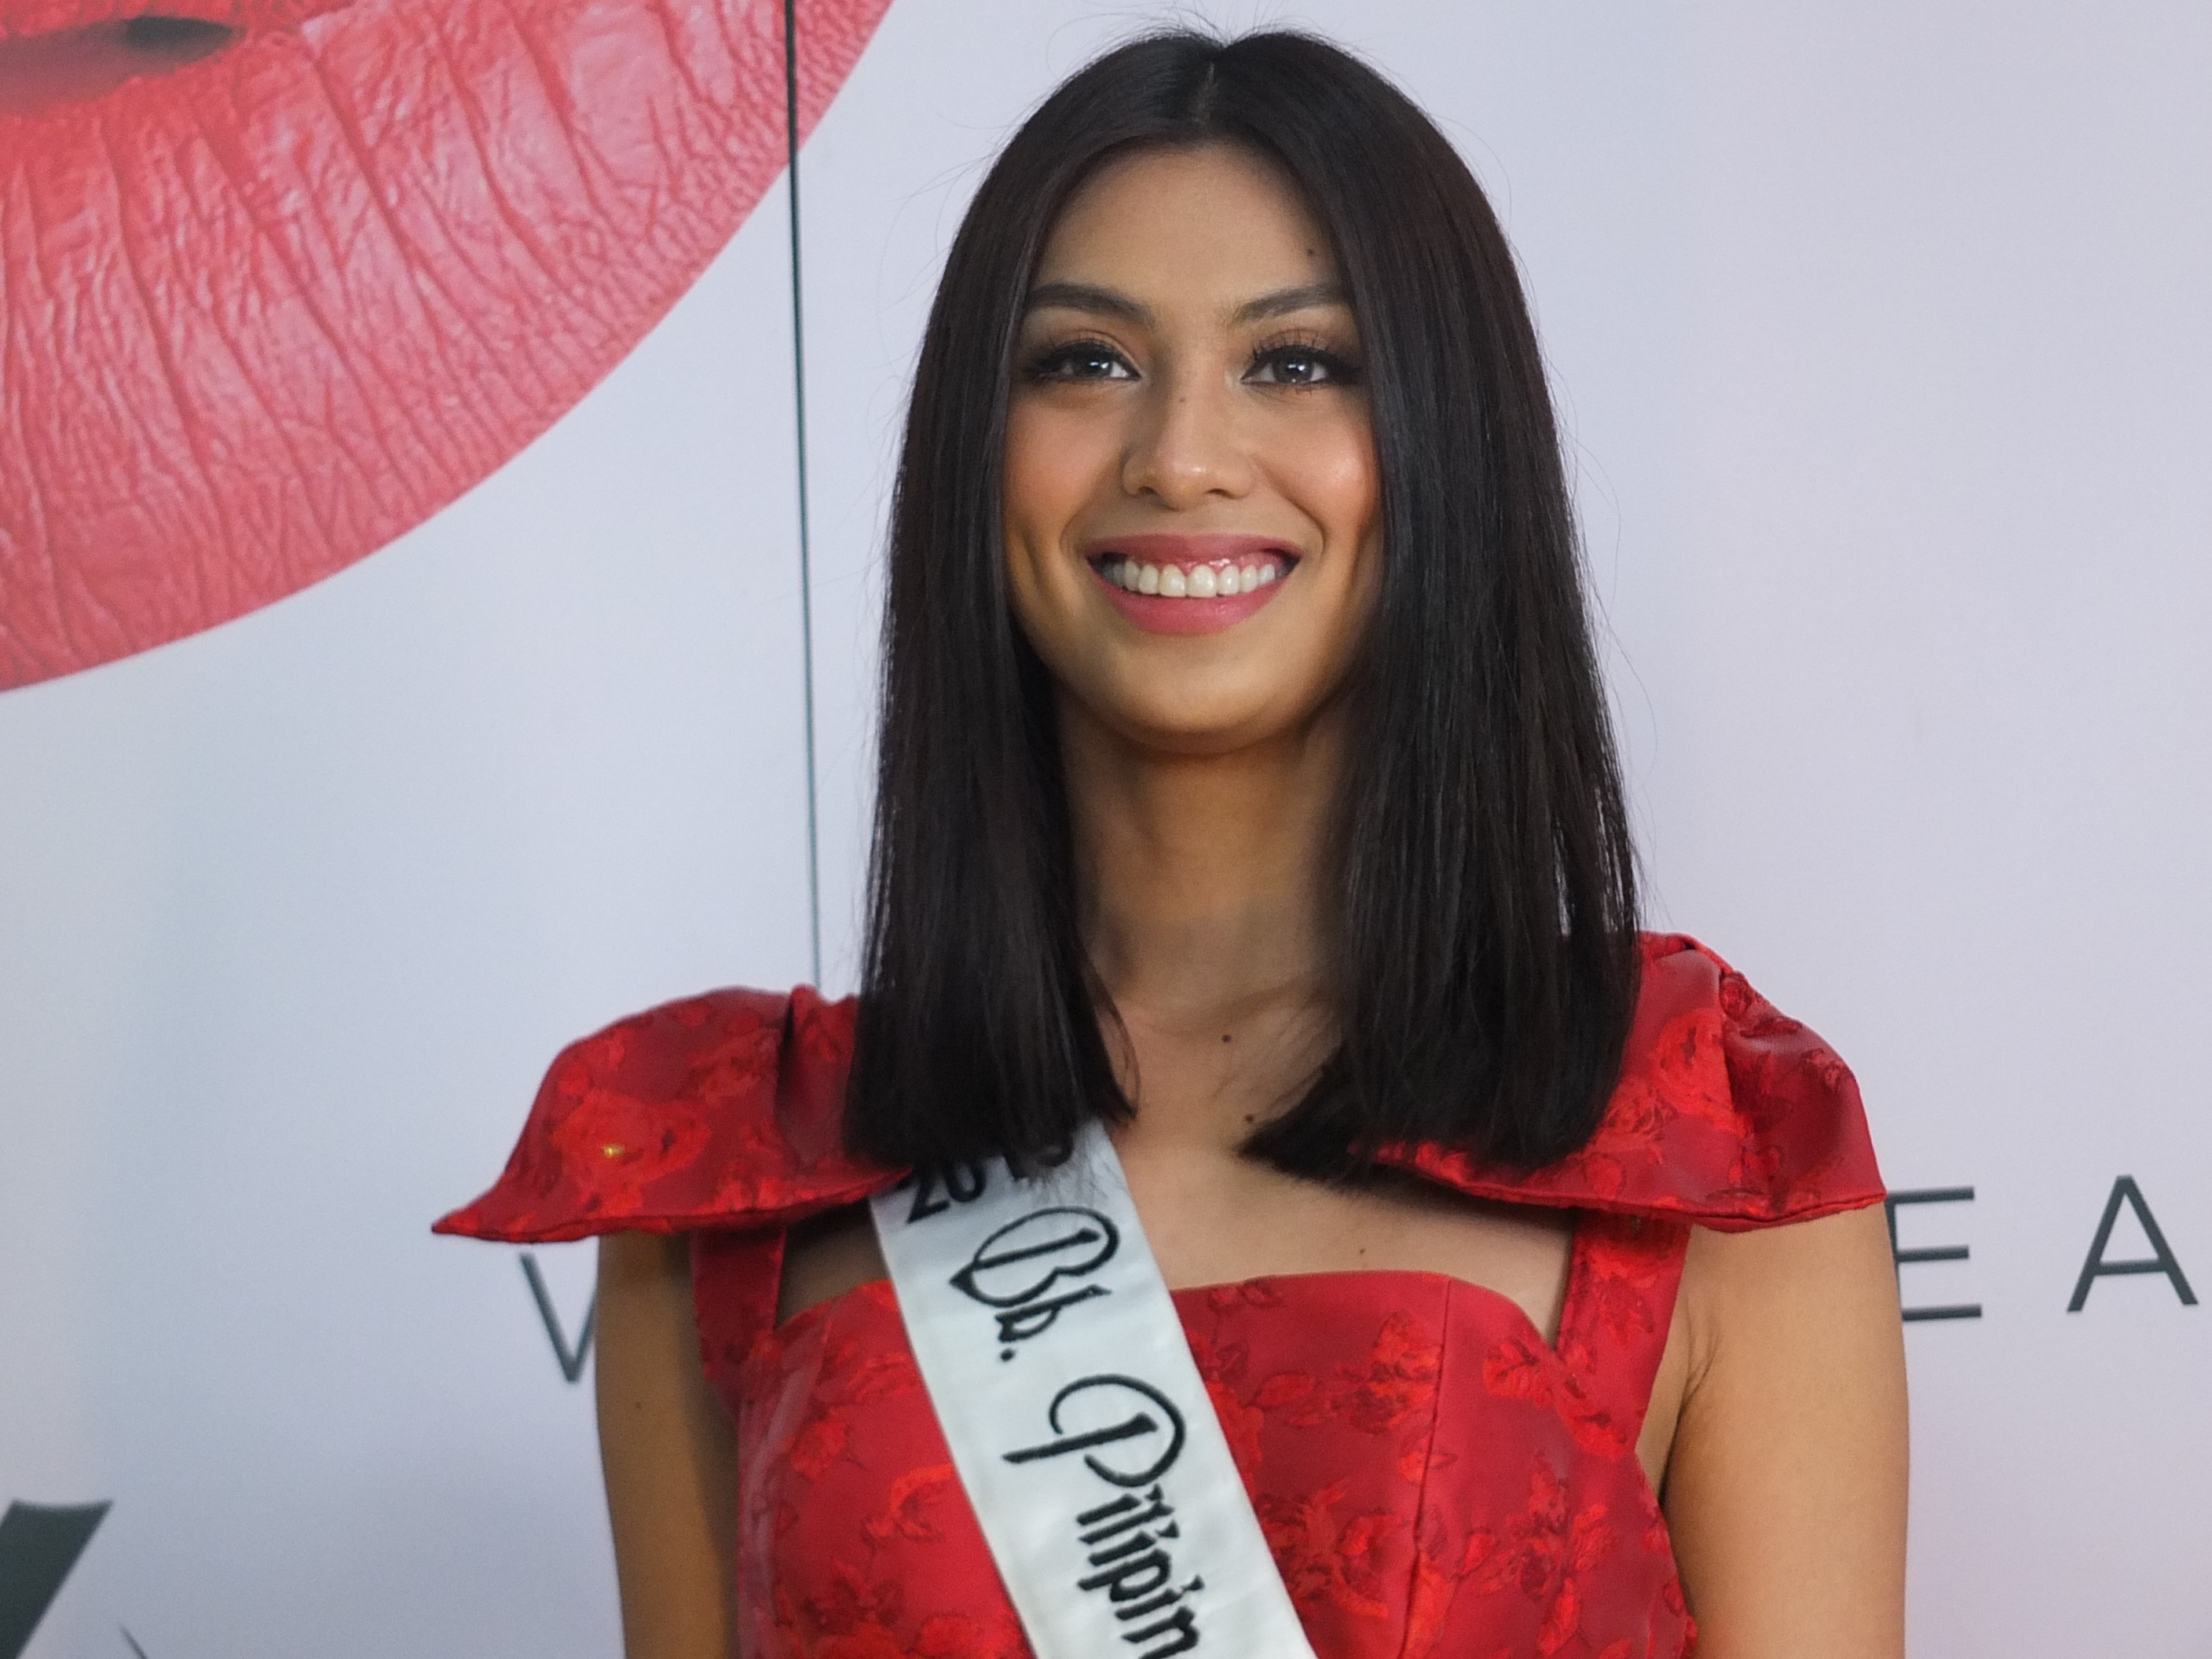 NEUTRAL. Bb Pilipinas International 2019 Patch Magtanong says they try to be neutral in answering political questions thrown at them.